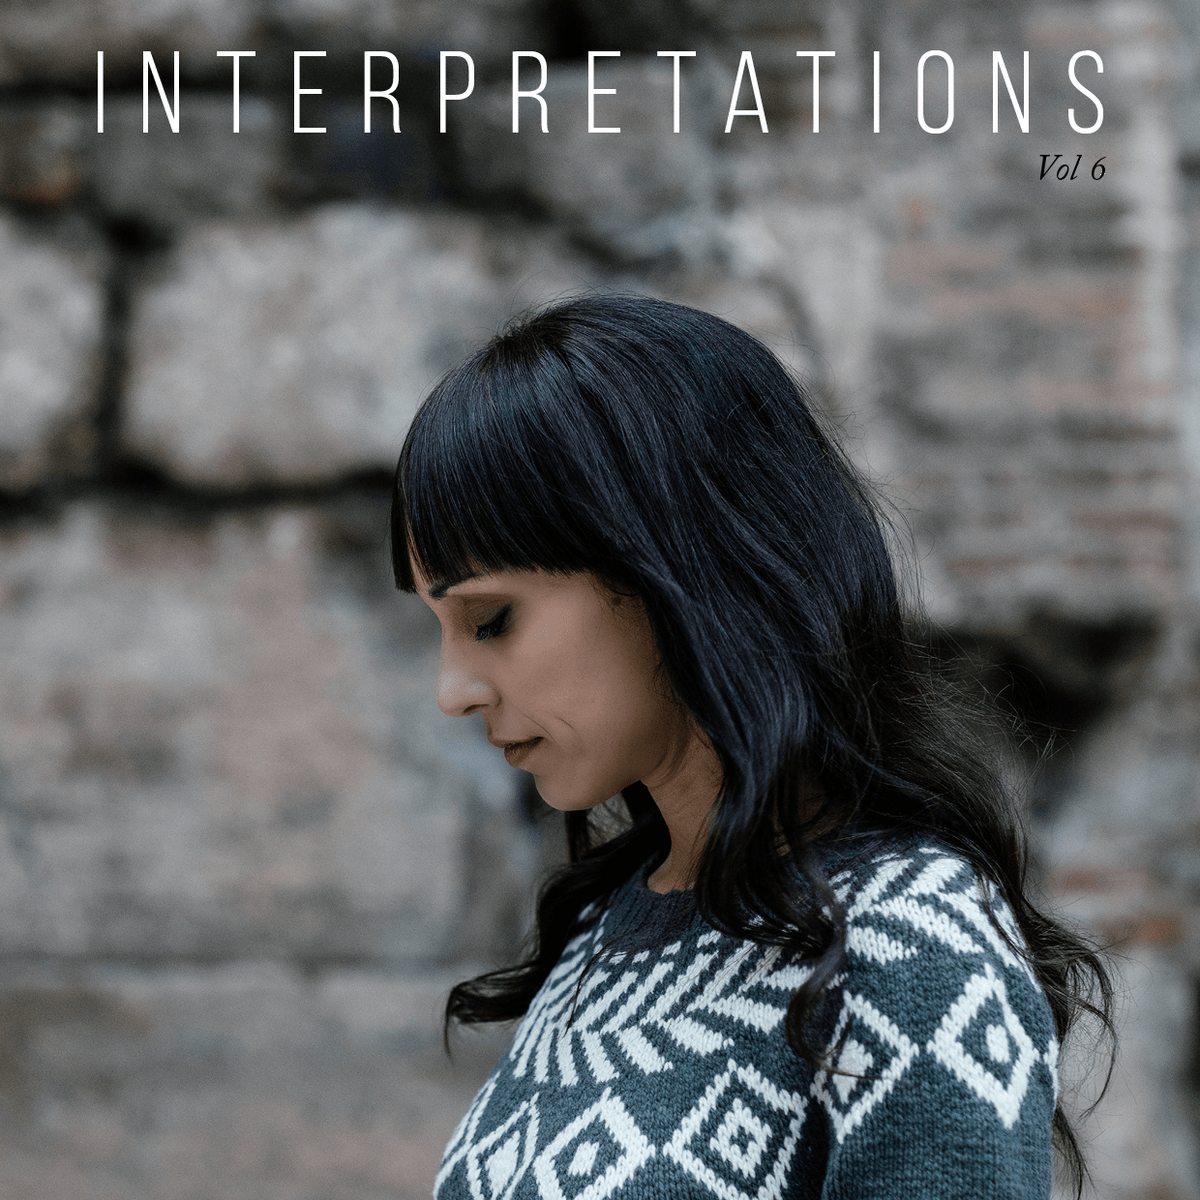 INTERPRETATIONS VOLUME 6 by Joji Locatelli and Veera Valimaki Pom Pom Press Magazine